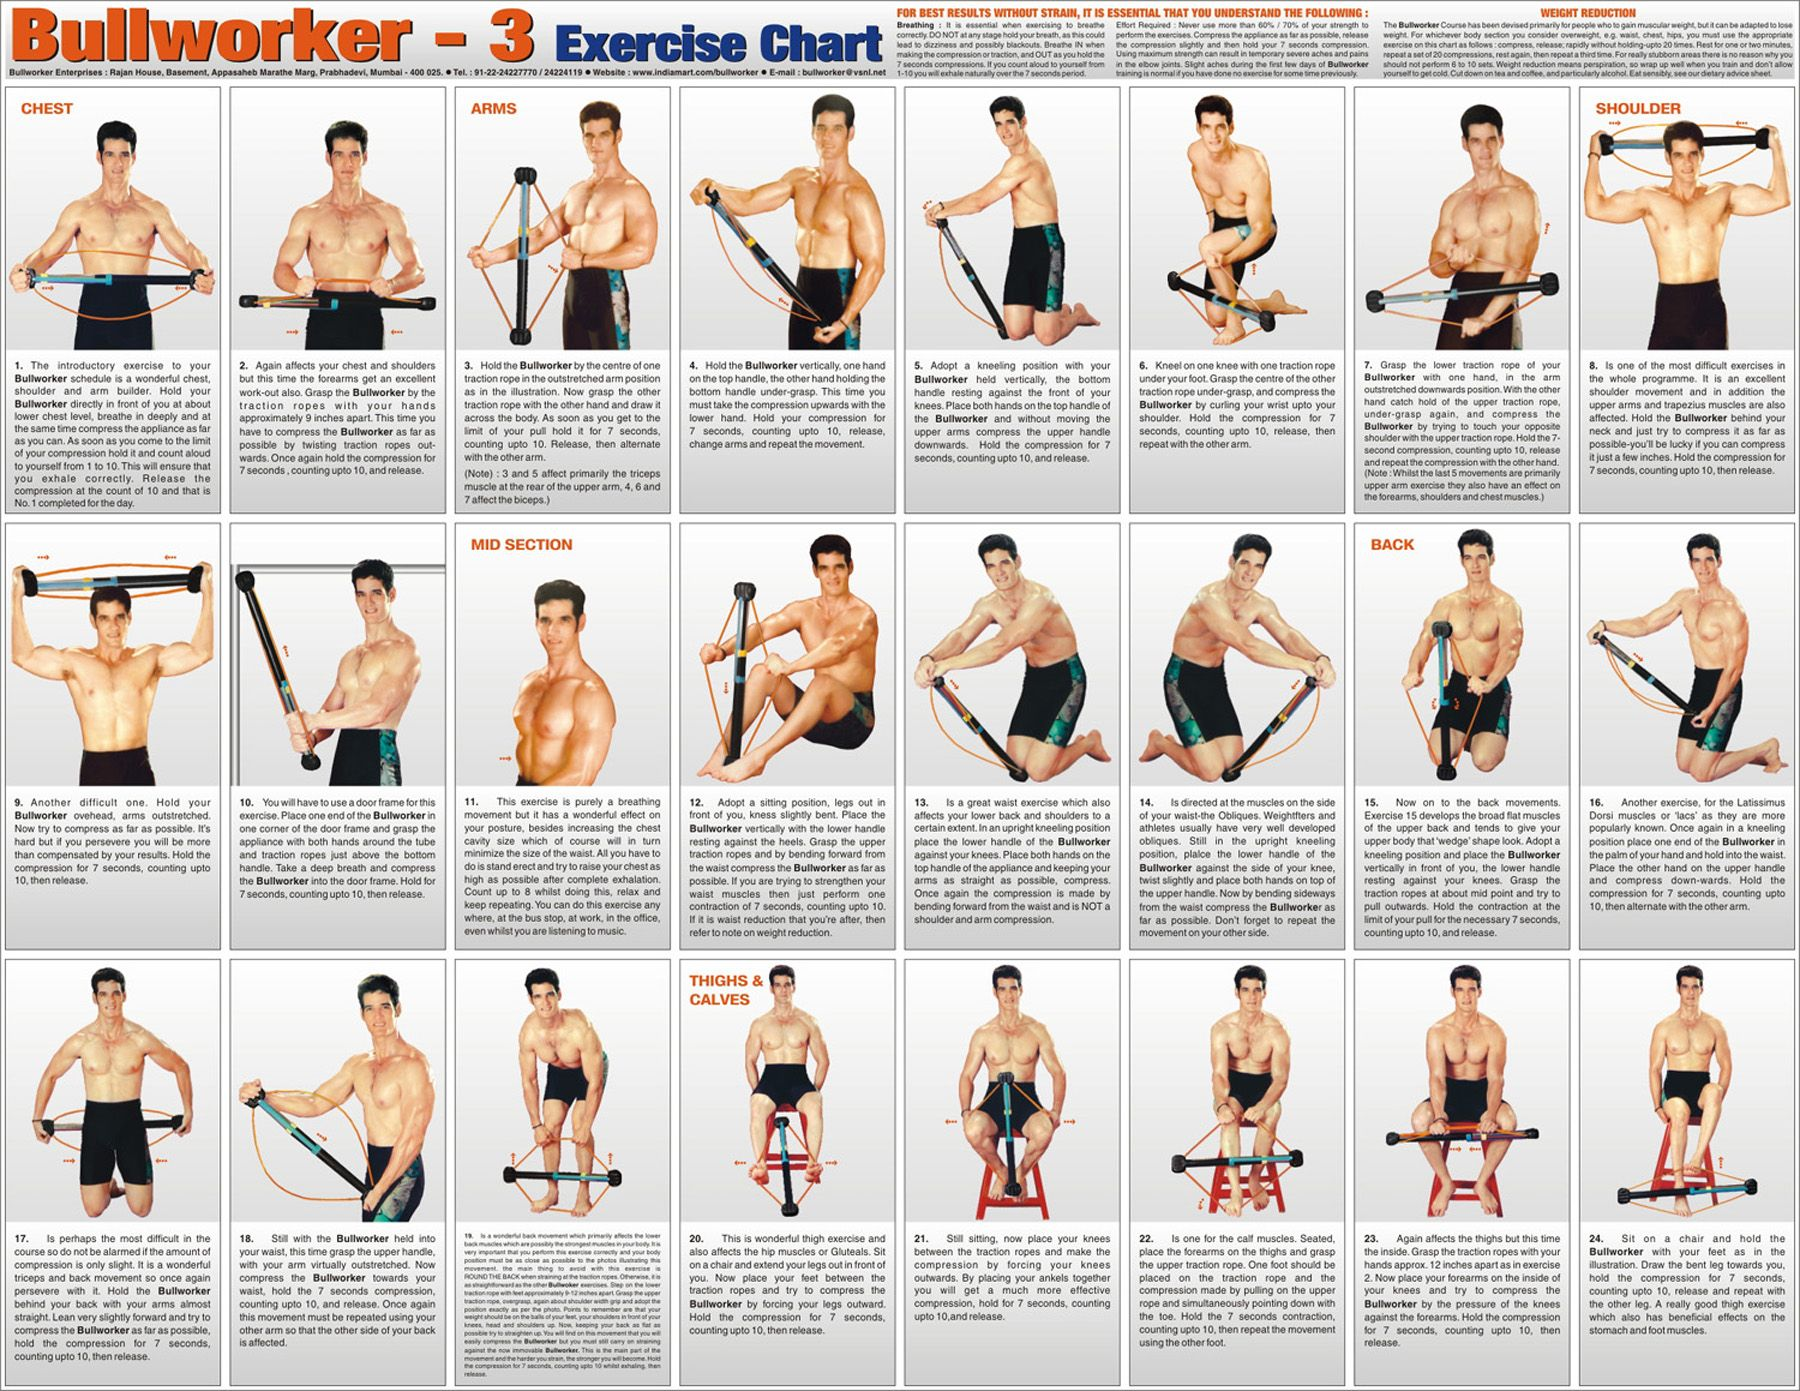 Bullworker | bullworker | Pinterest | Exercises and Workout